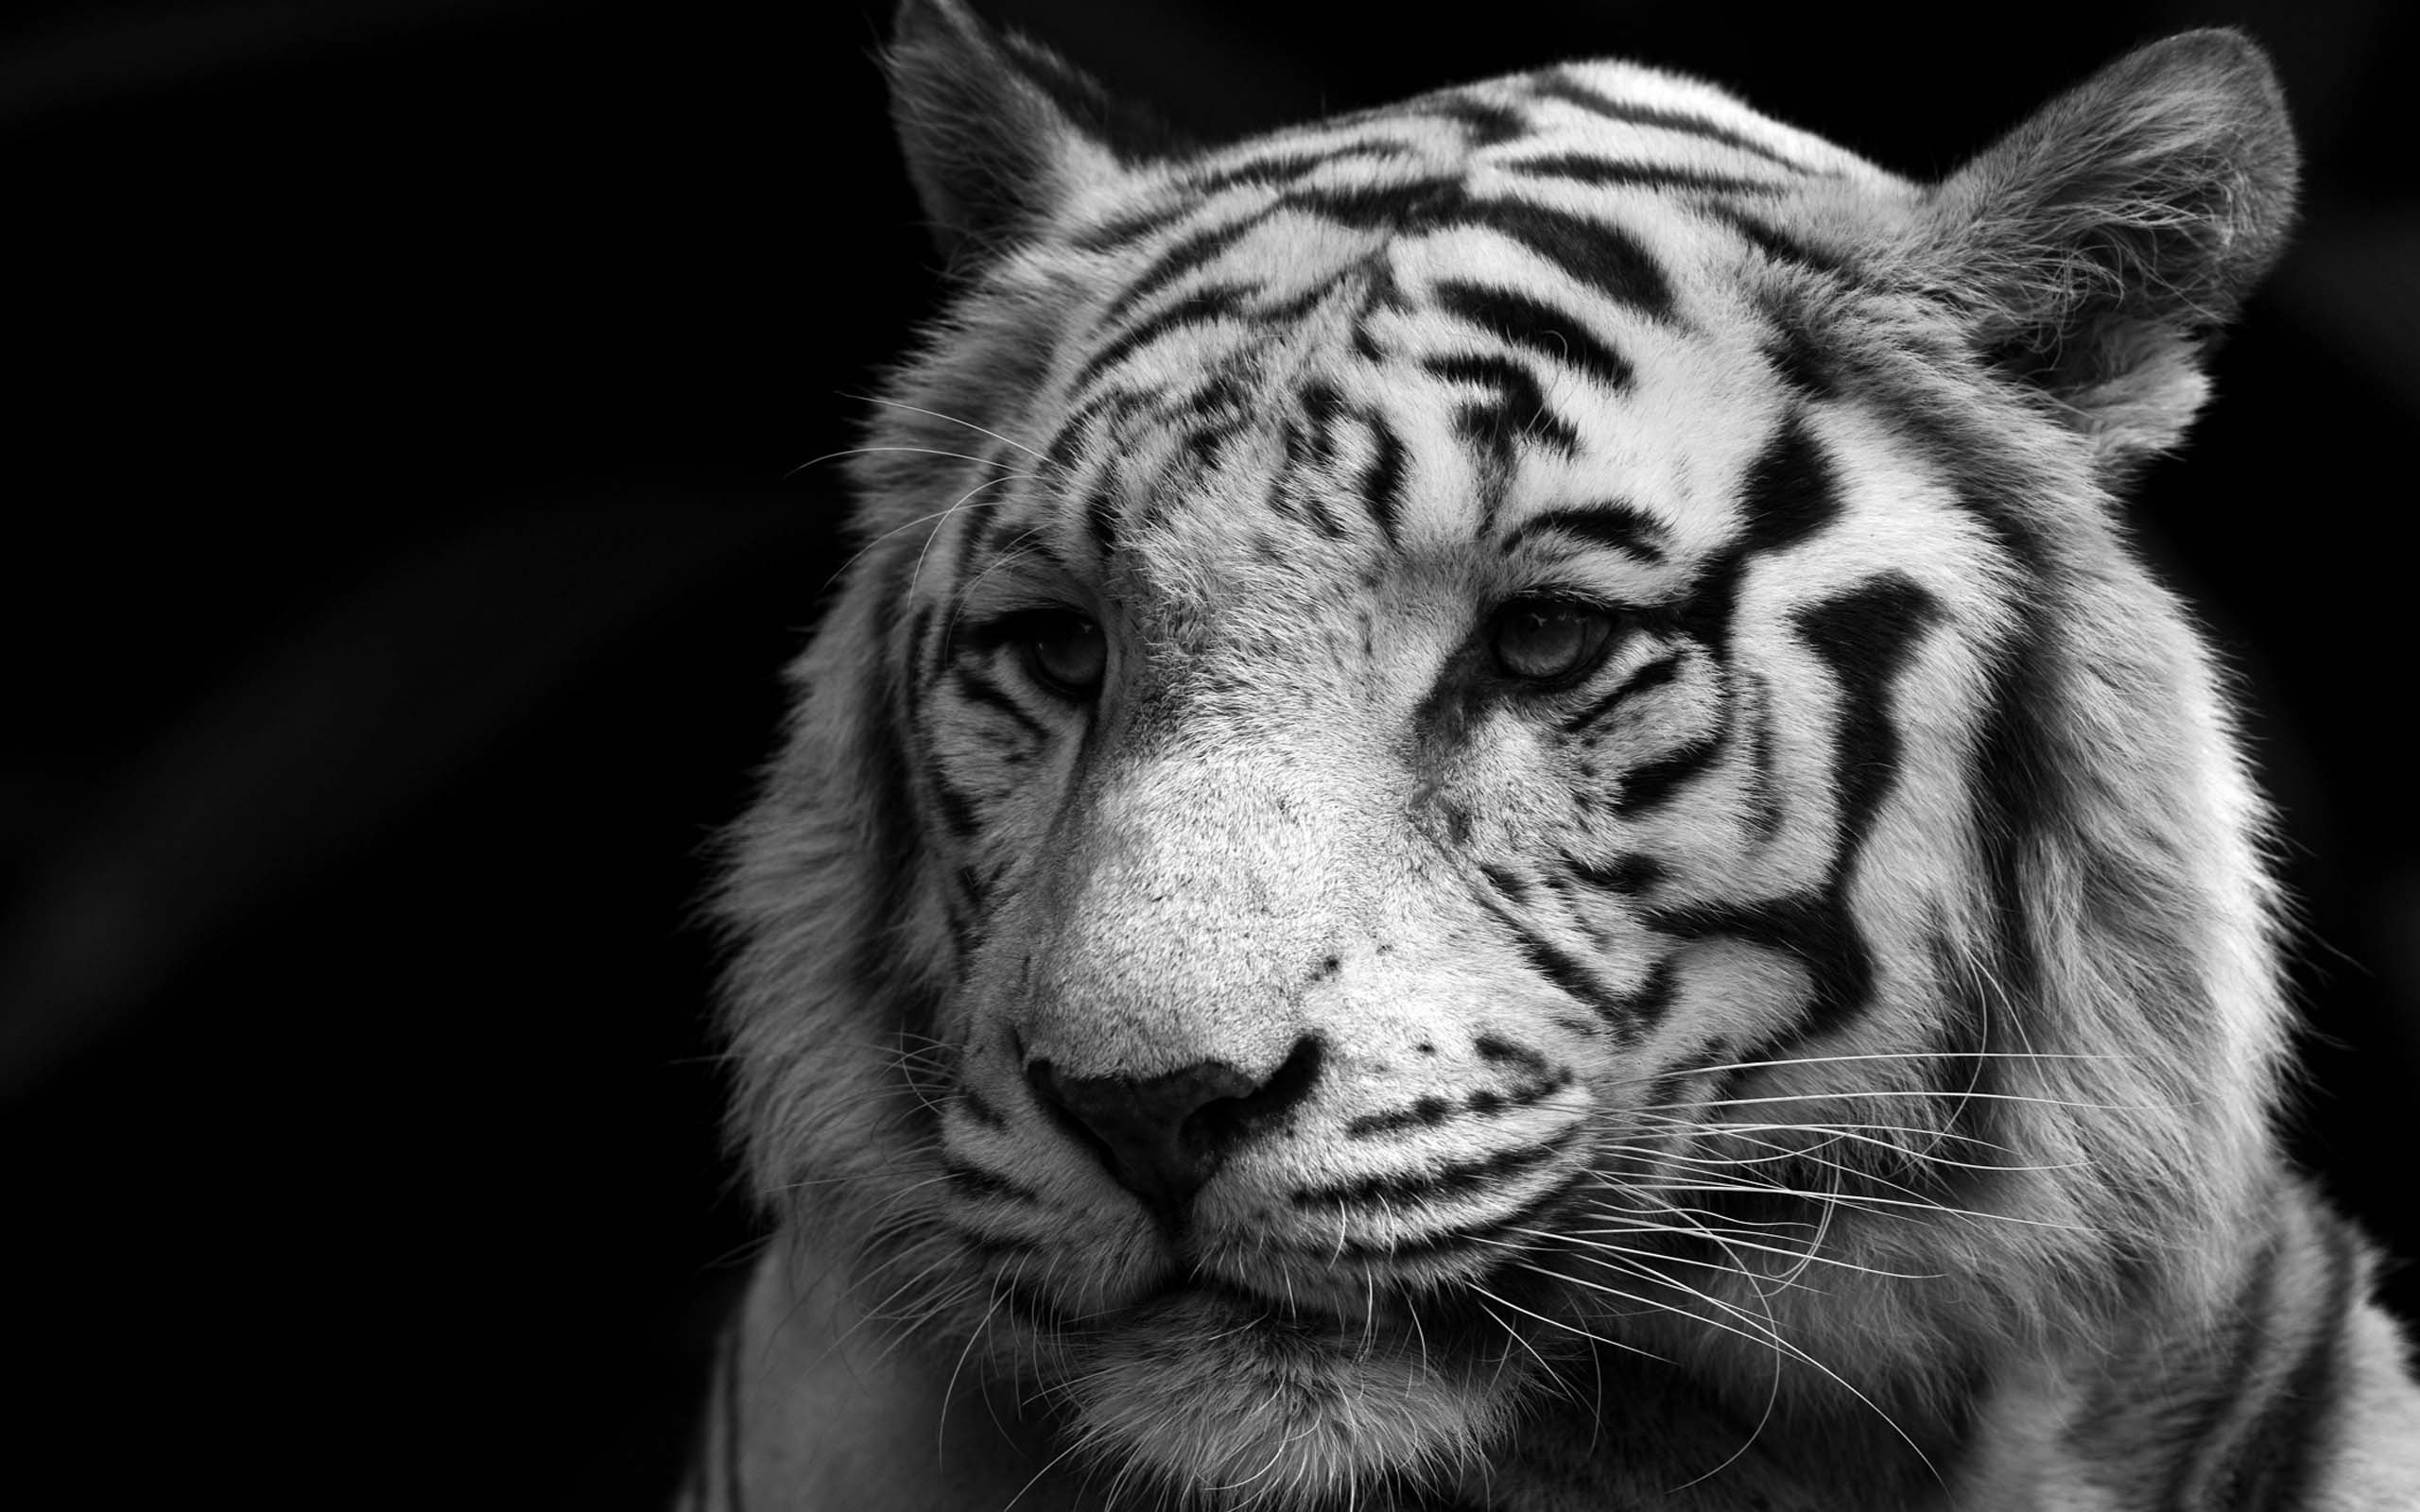 Nature Lion Big Cats Fury Angry Portrait Monochrome: White Tiger Wallpapers Images Photos Pictures Backgrounds